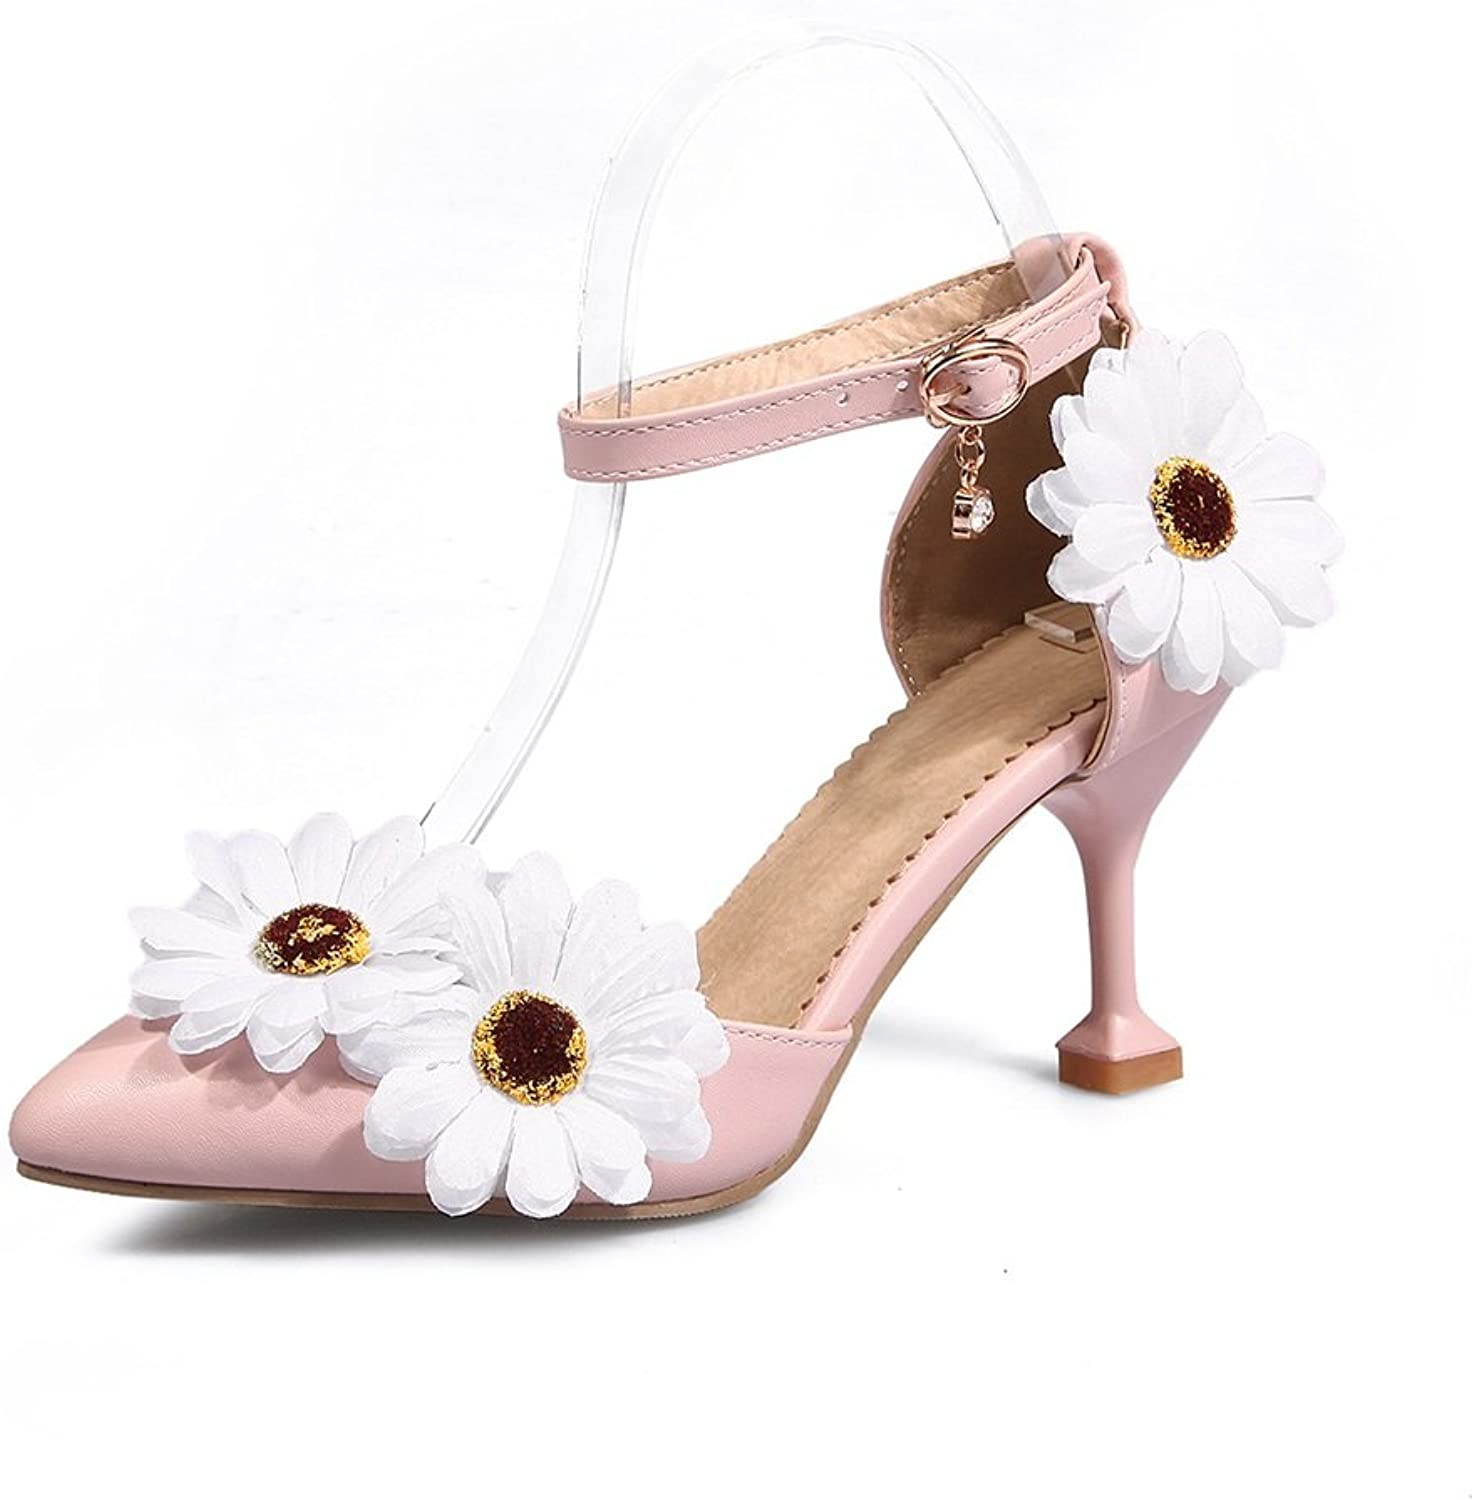 Exing Women's shoes New Korean Flower Buckle Buckle Shallow Mouth Metal Decorative High-Heeled shoes shoes